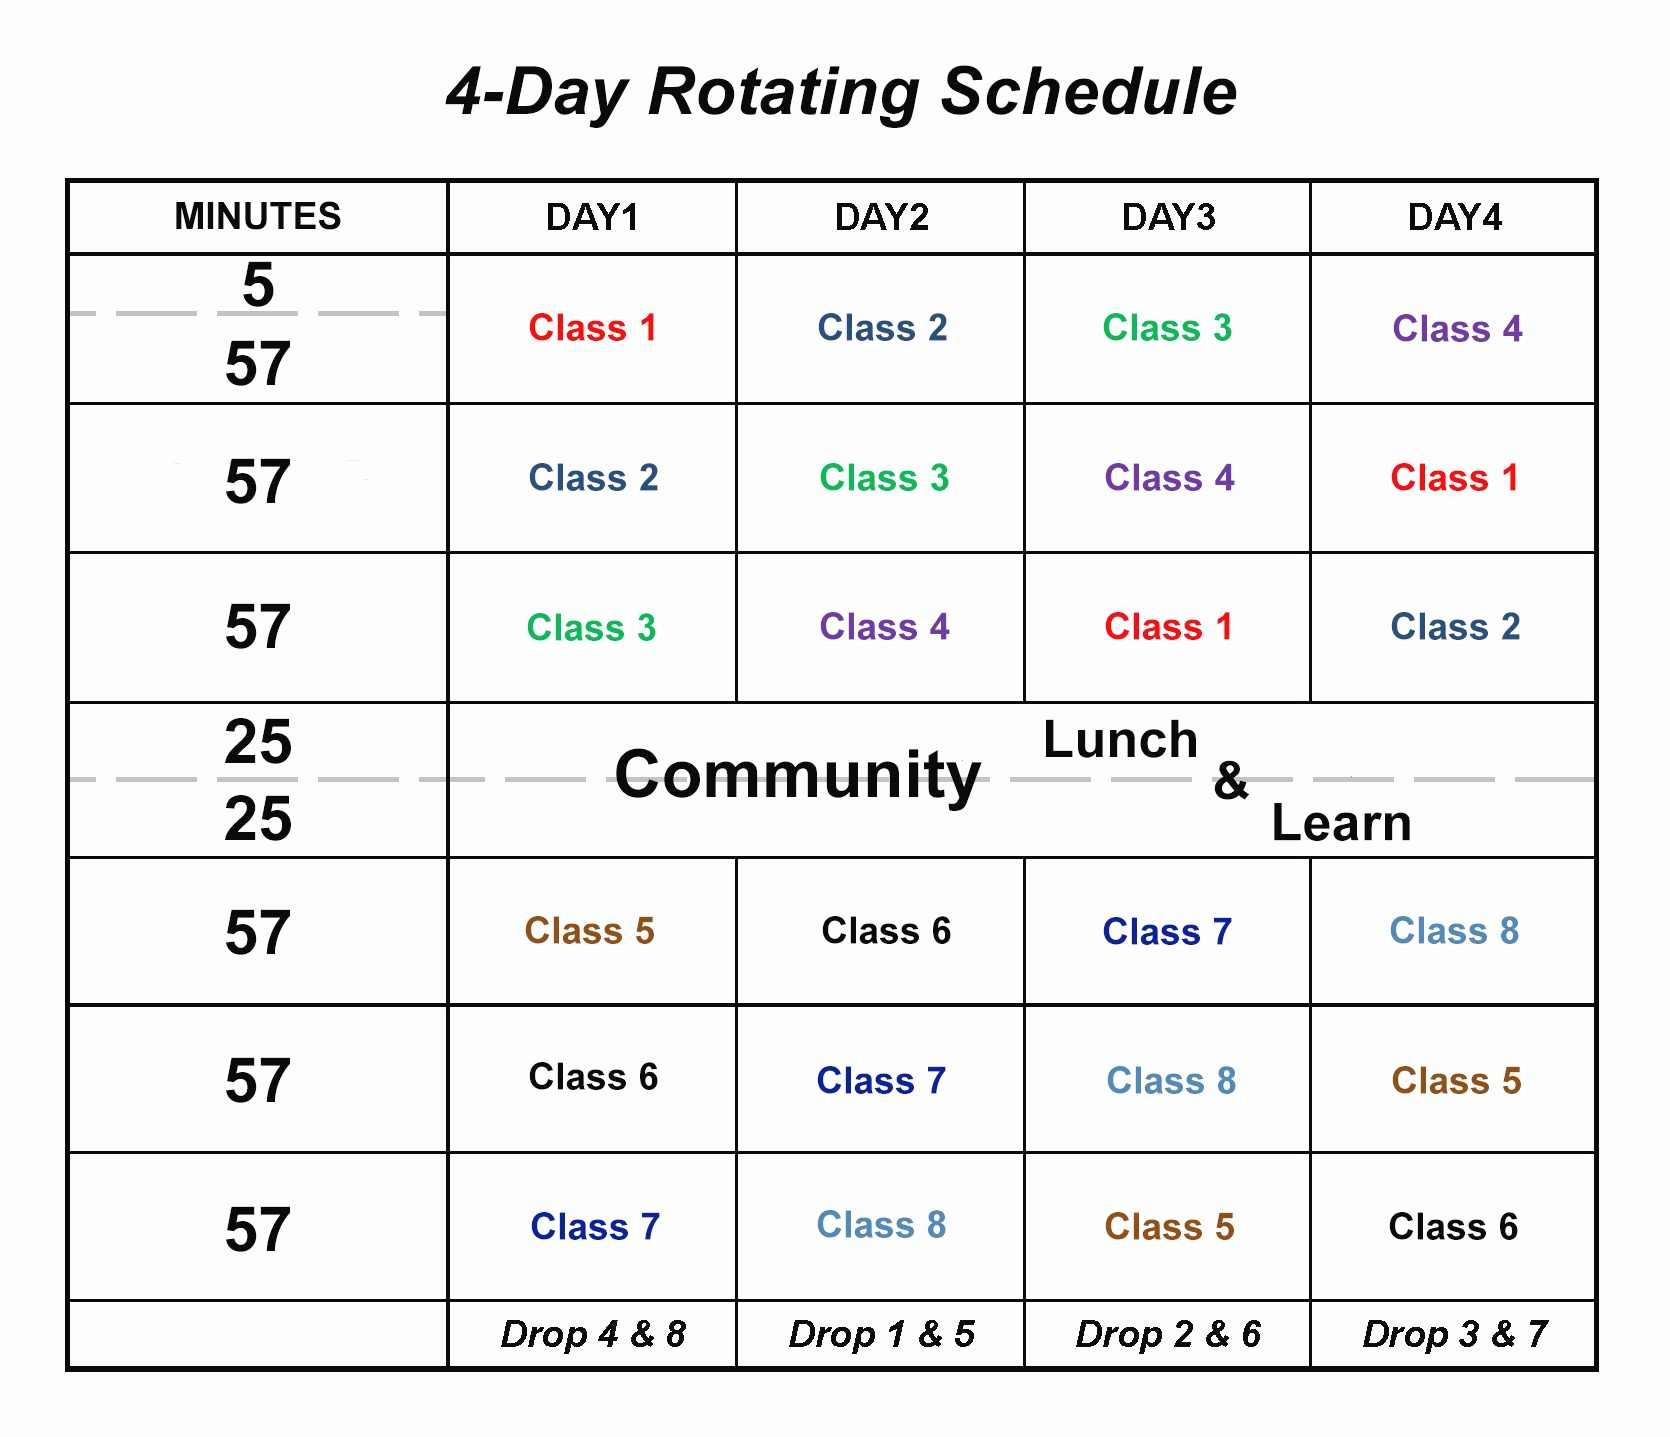 Monthly Shift Schedule Template Awesome Monthly Rotating Shift Schedule Template Beautiful